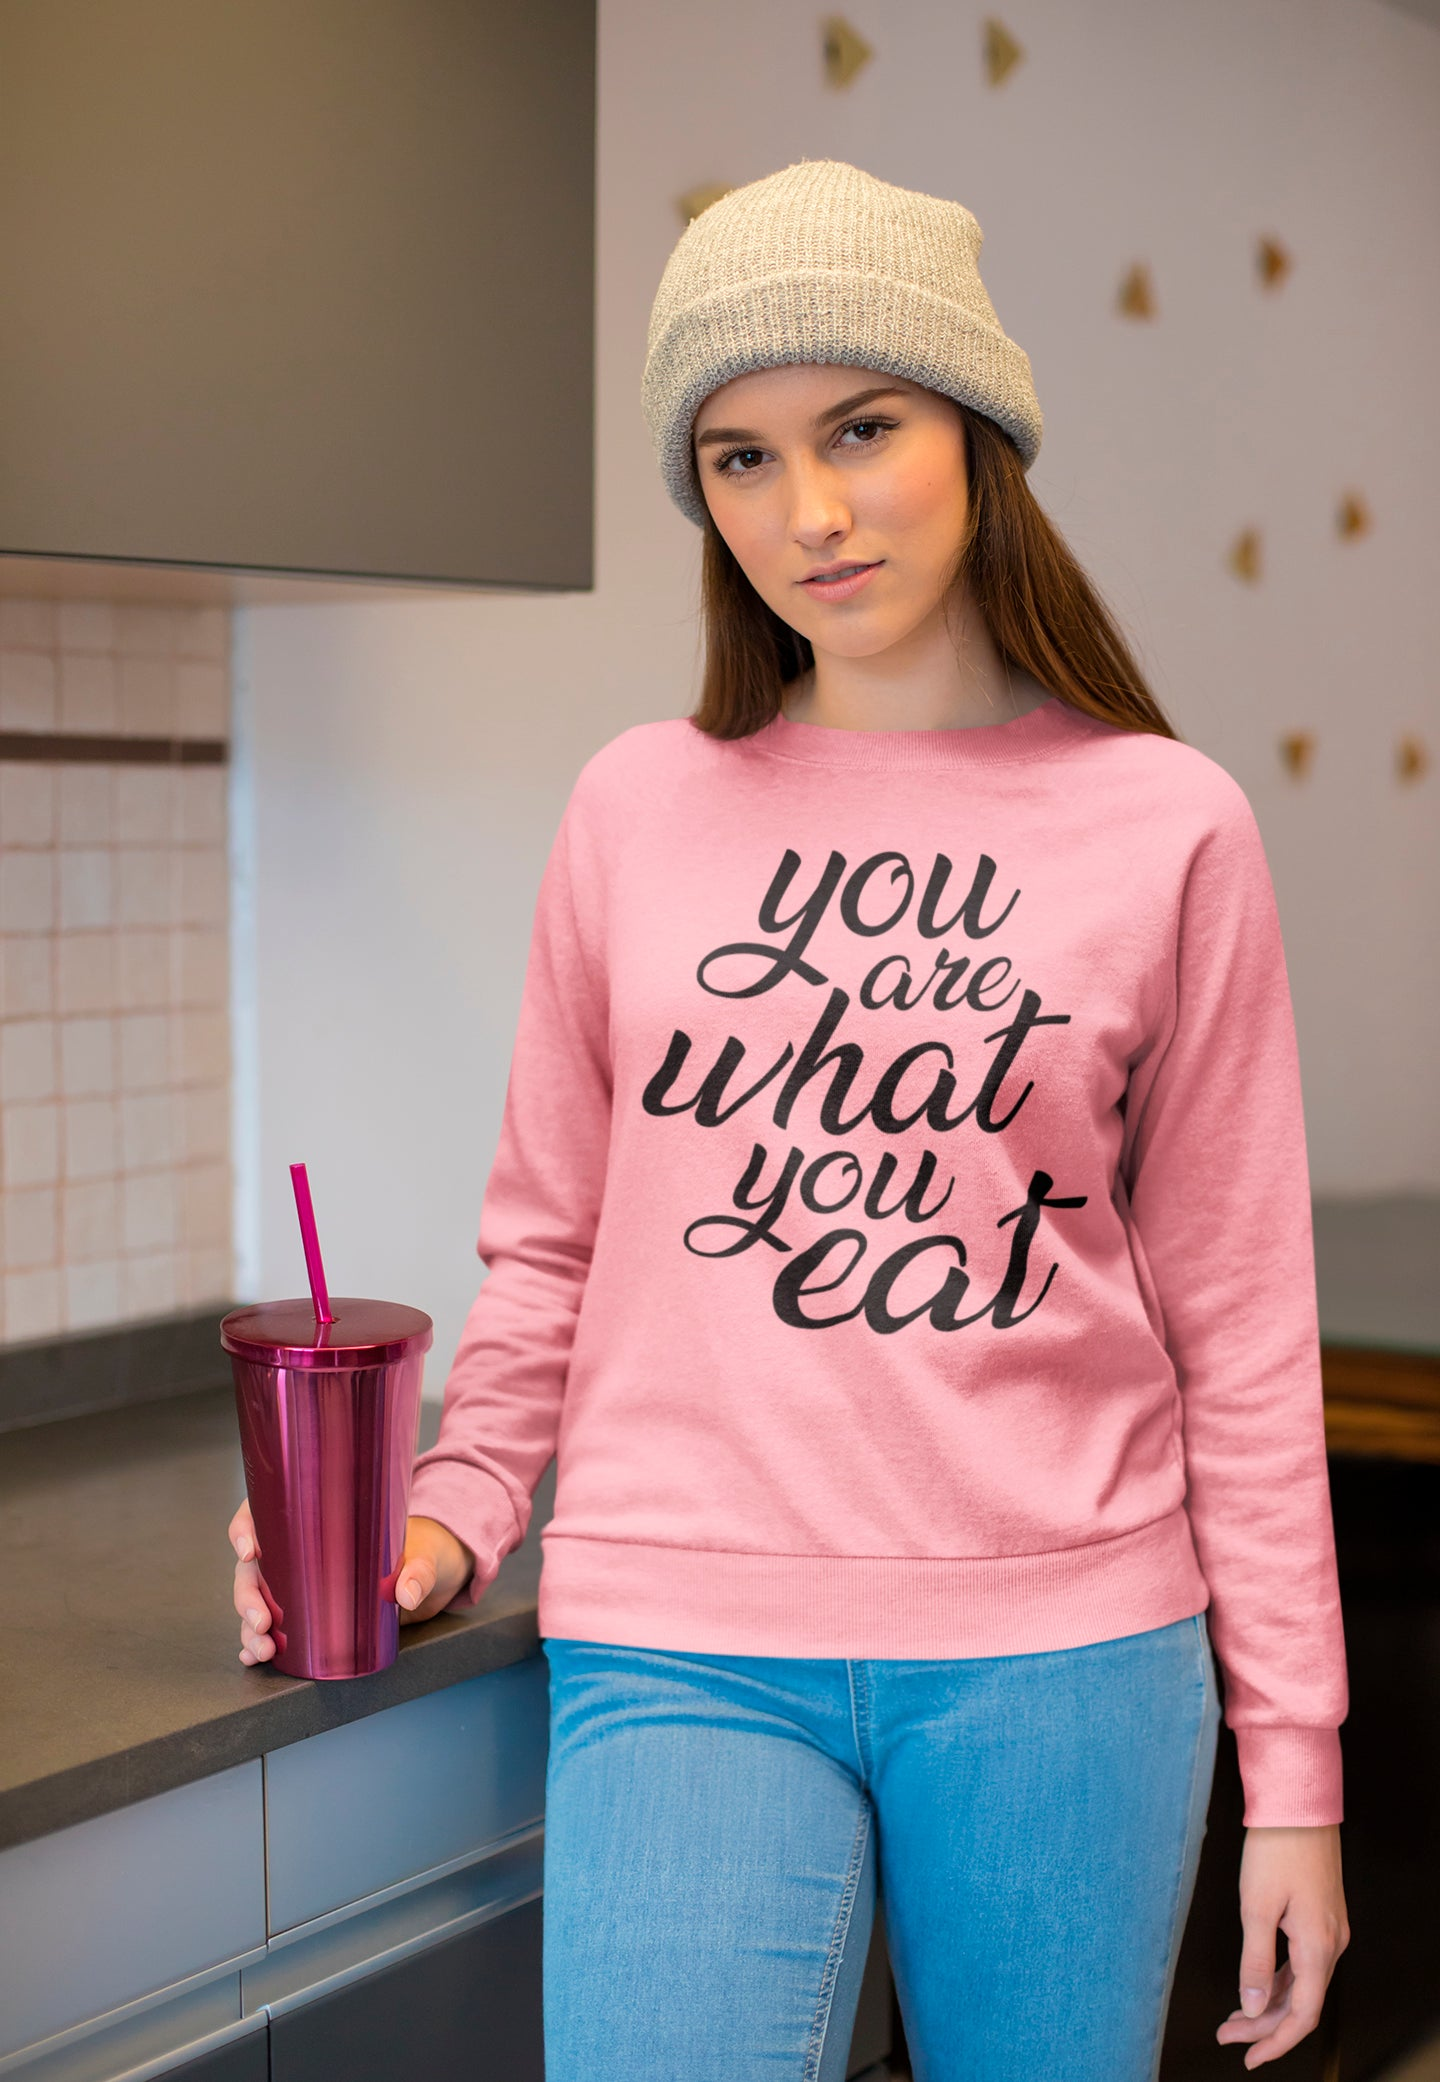 You are what you eat - Sweatshirt